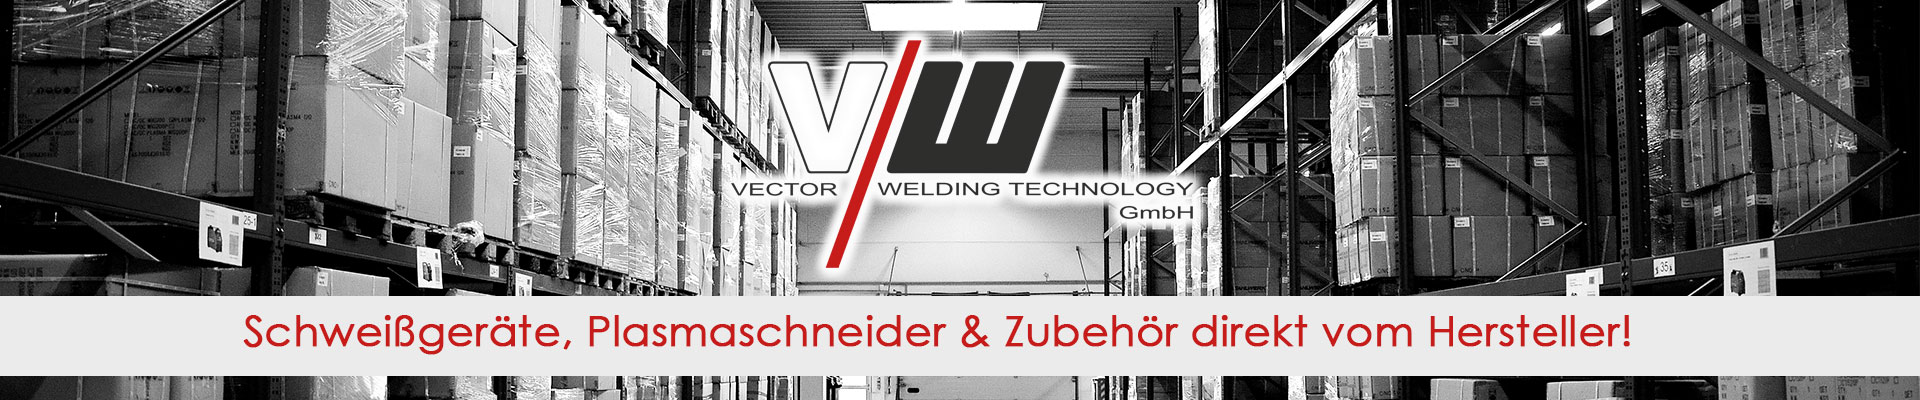 Welding equipment dealer wanted